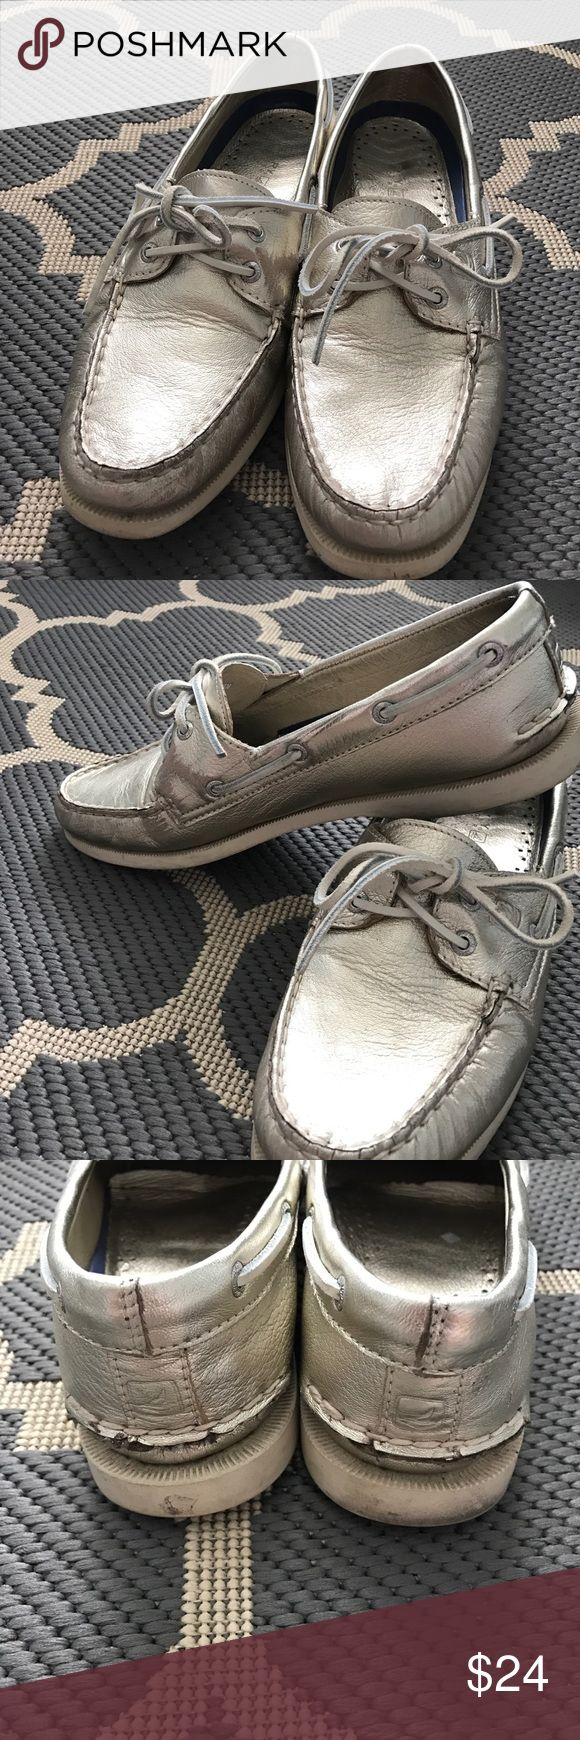 Gold Sperry Top Sider Shoes Gold Sperry Top Sider Shoes. Women's size 9.5. Well worn but have plenty of wear left. Price reflects this. Beautiful piece works well with many outfits. Sperry Top-Sider Shoes